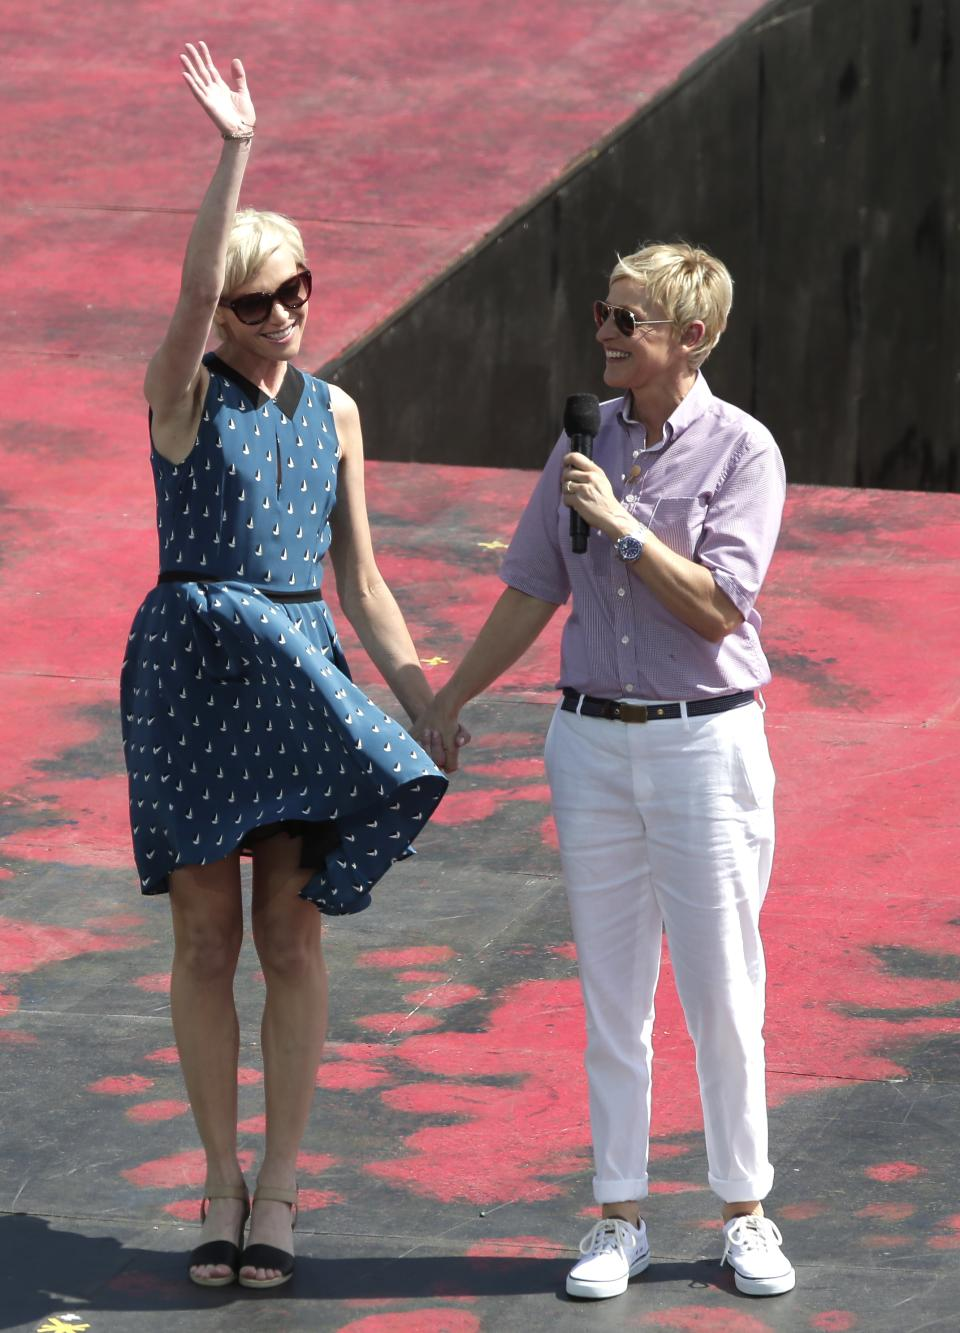 U.S. talk show host Ellen DeGeneres, right, introduces her wife Portia de Rossi during the recording of DeGeneres' show in Sydney, Australia, Saturday, March 23, 2013. (AP Photo/Rick Rycroft)